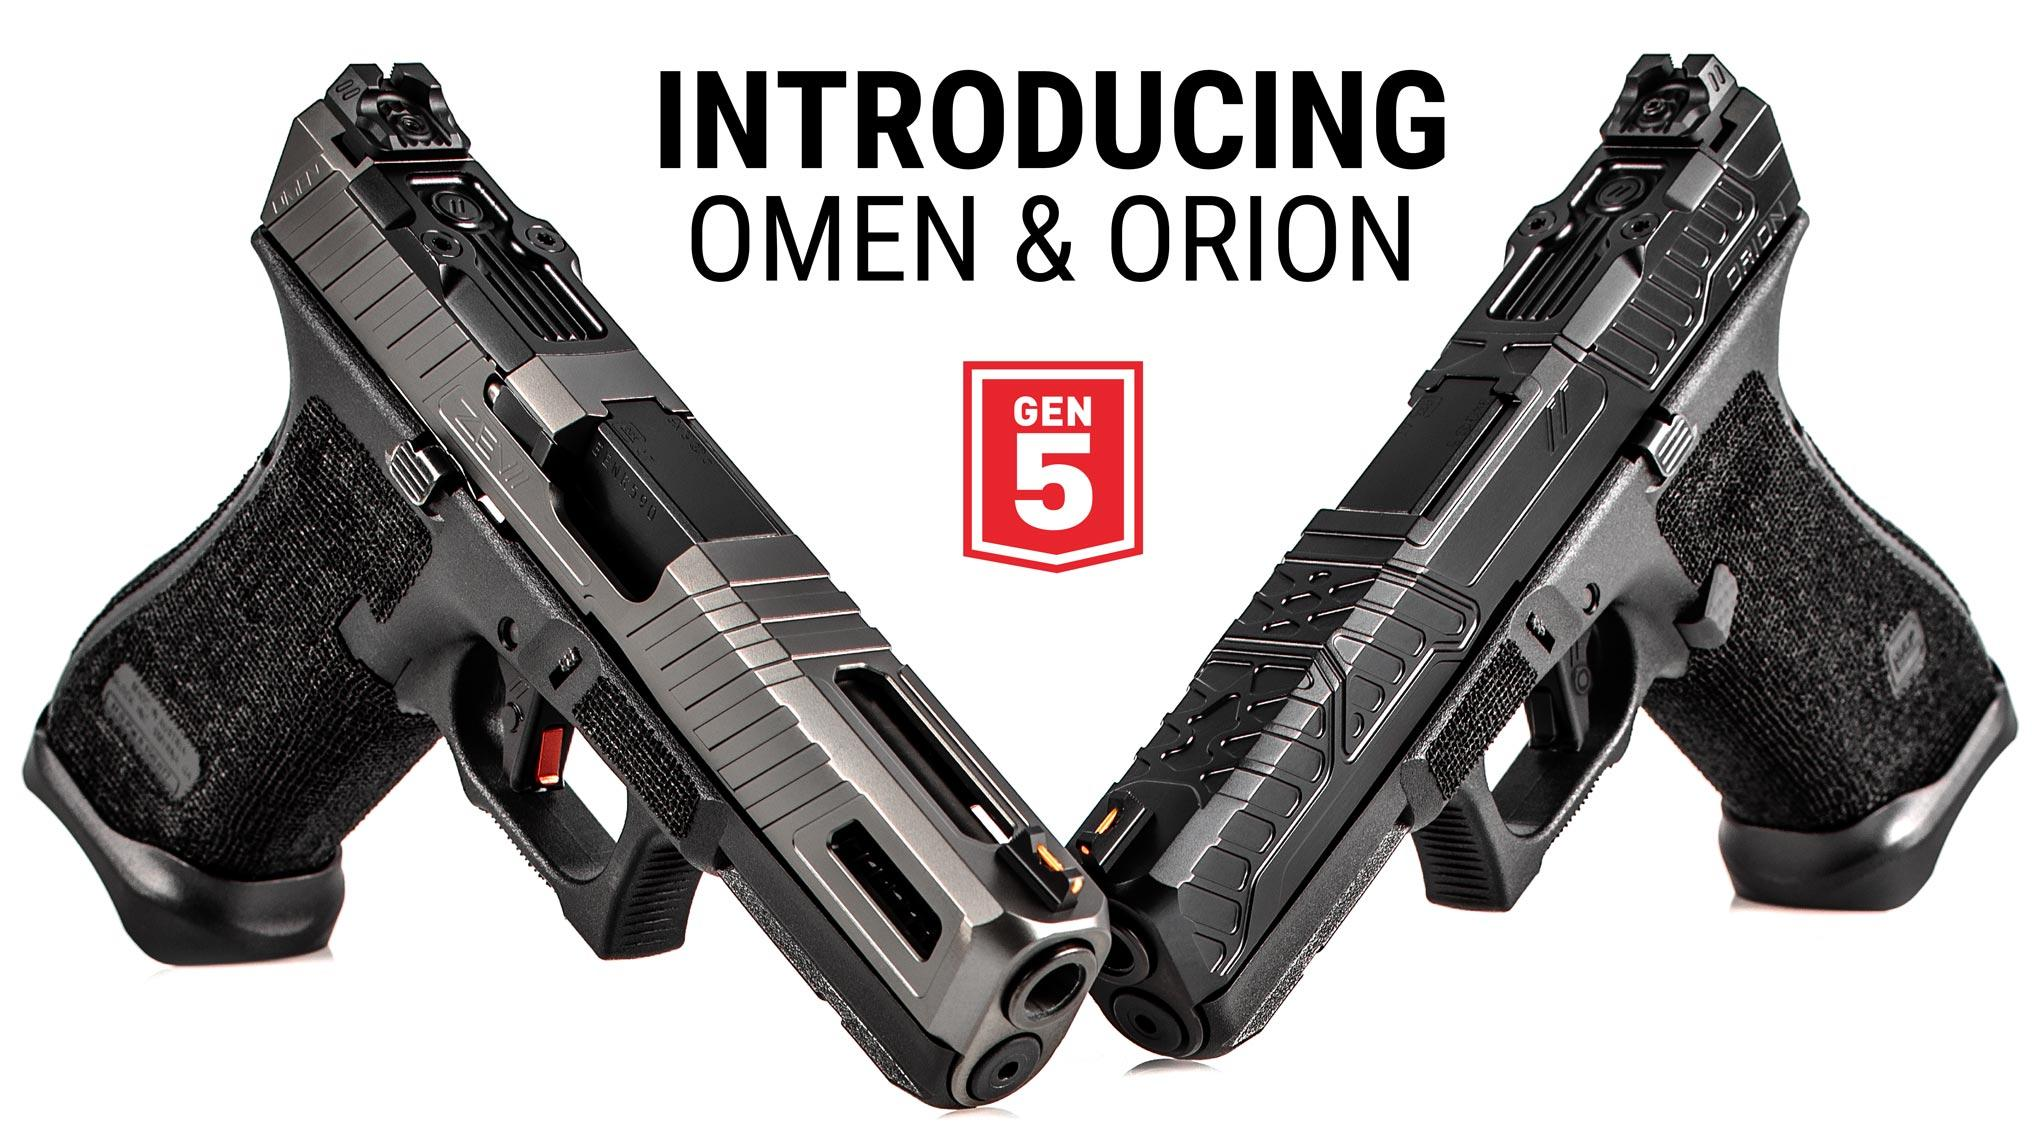 Gen 5 Orion Slide and Omen Slide | NEW ZEV Tech